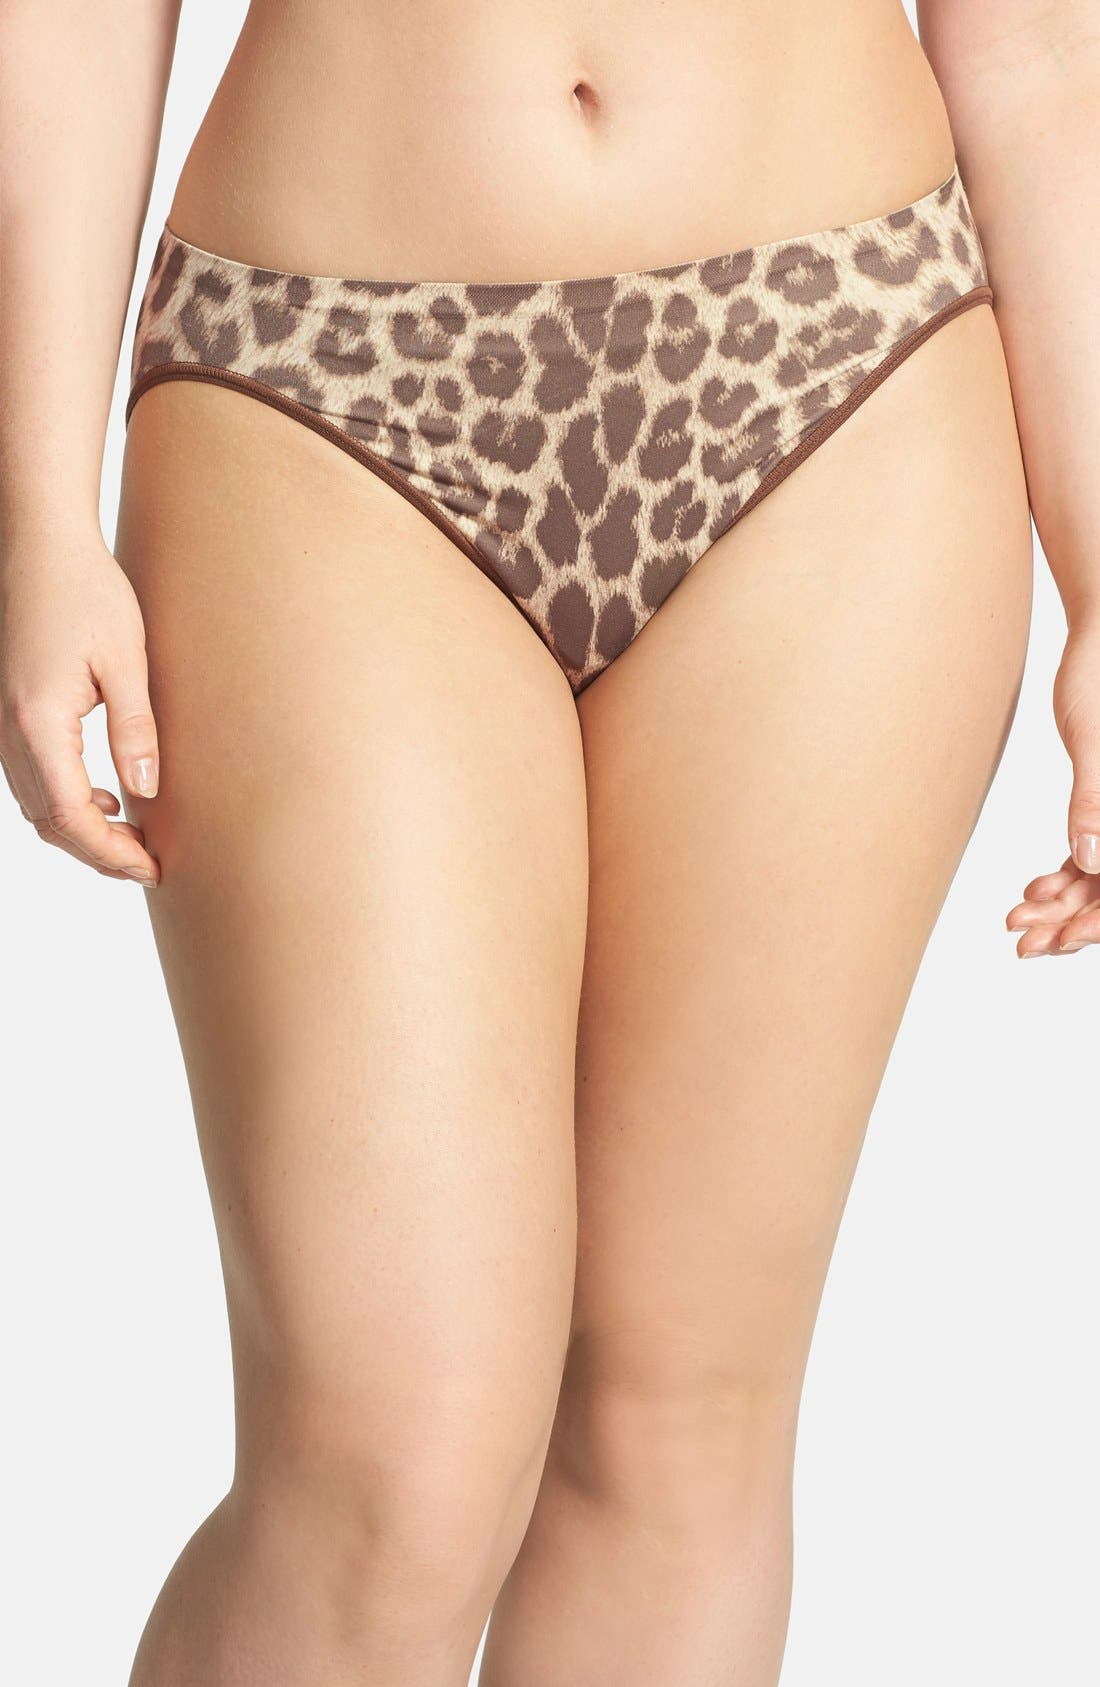 Alternate Image 1 Selected - Shimera Print Seamless High Cut Briefs (Plus Size) (3 for $30)